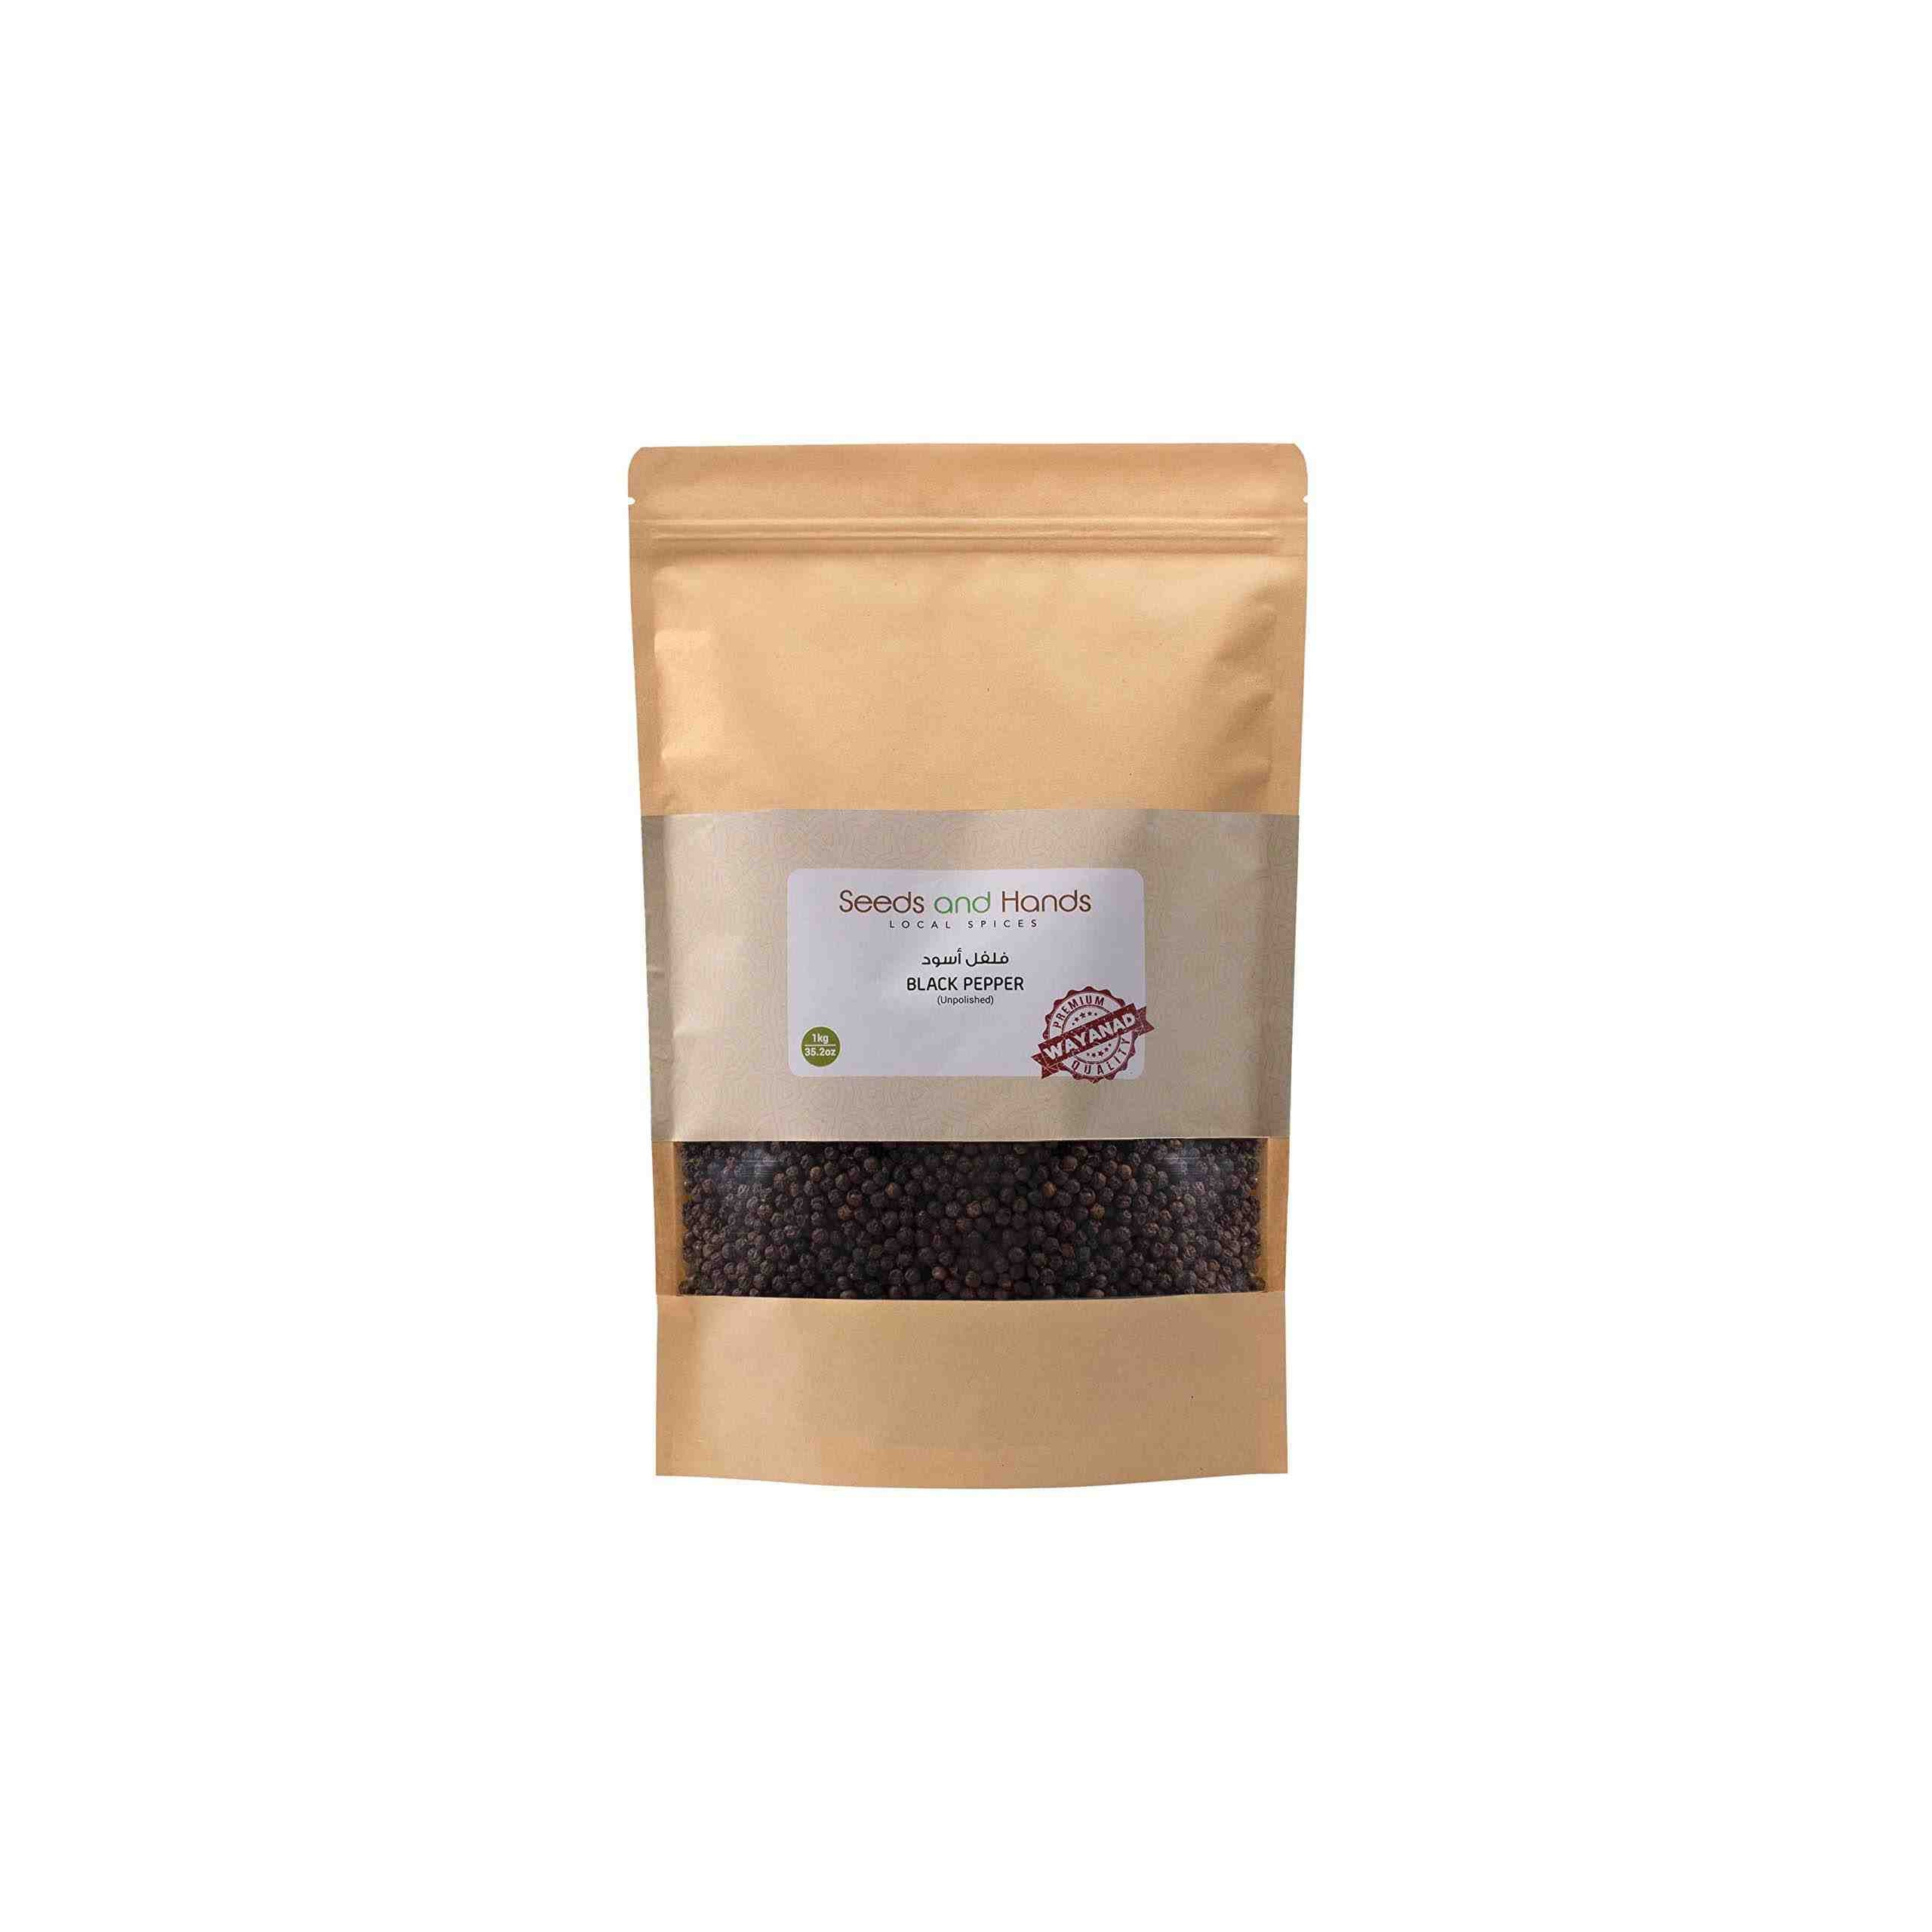 Seeds and Hands Tellicherry Special Extra Bold Black Pepper/Kali Mirch Whole (Super Saver Pack 1kg)